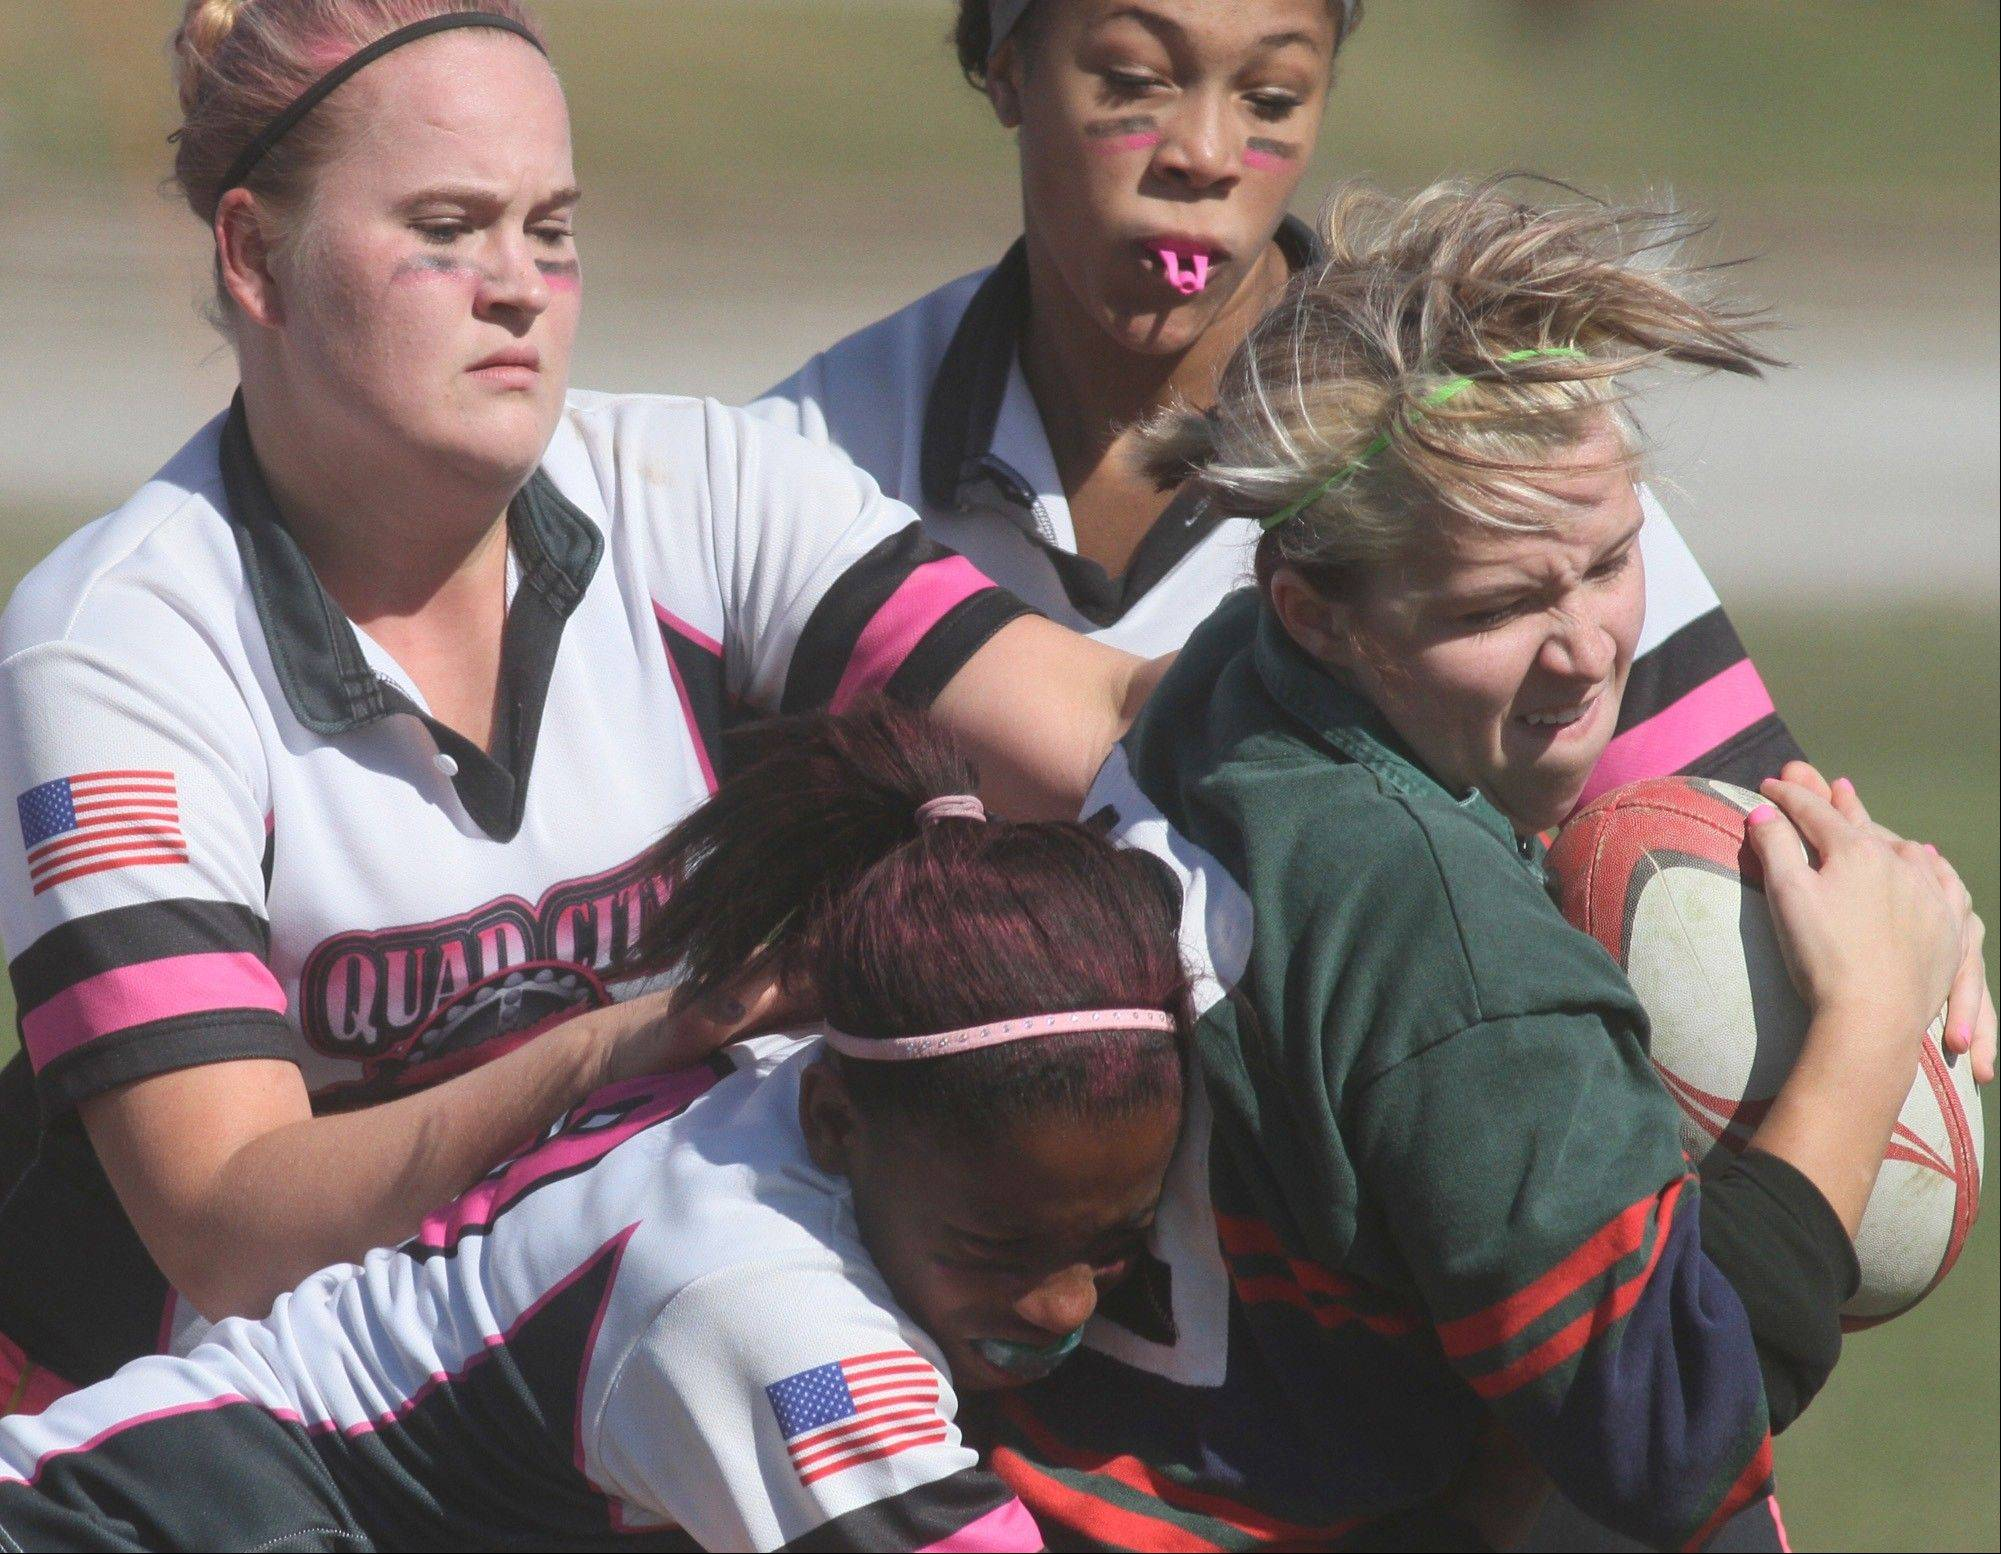 The Palatine Rugby Club offers Powder Puff Rugby for high school girls Mondays, April 1-29, at Falcon Park Recreation Center.